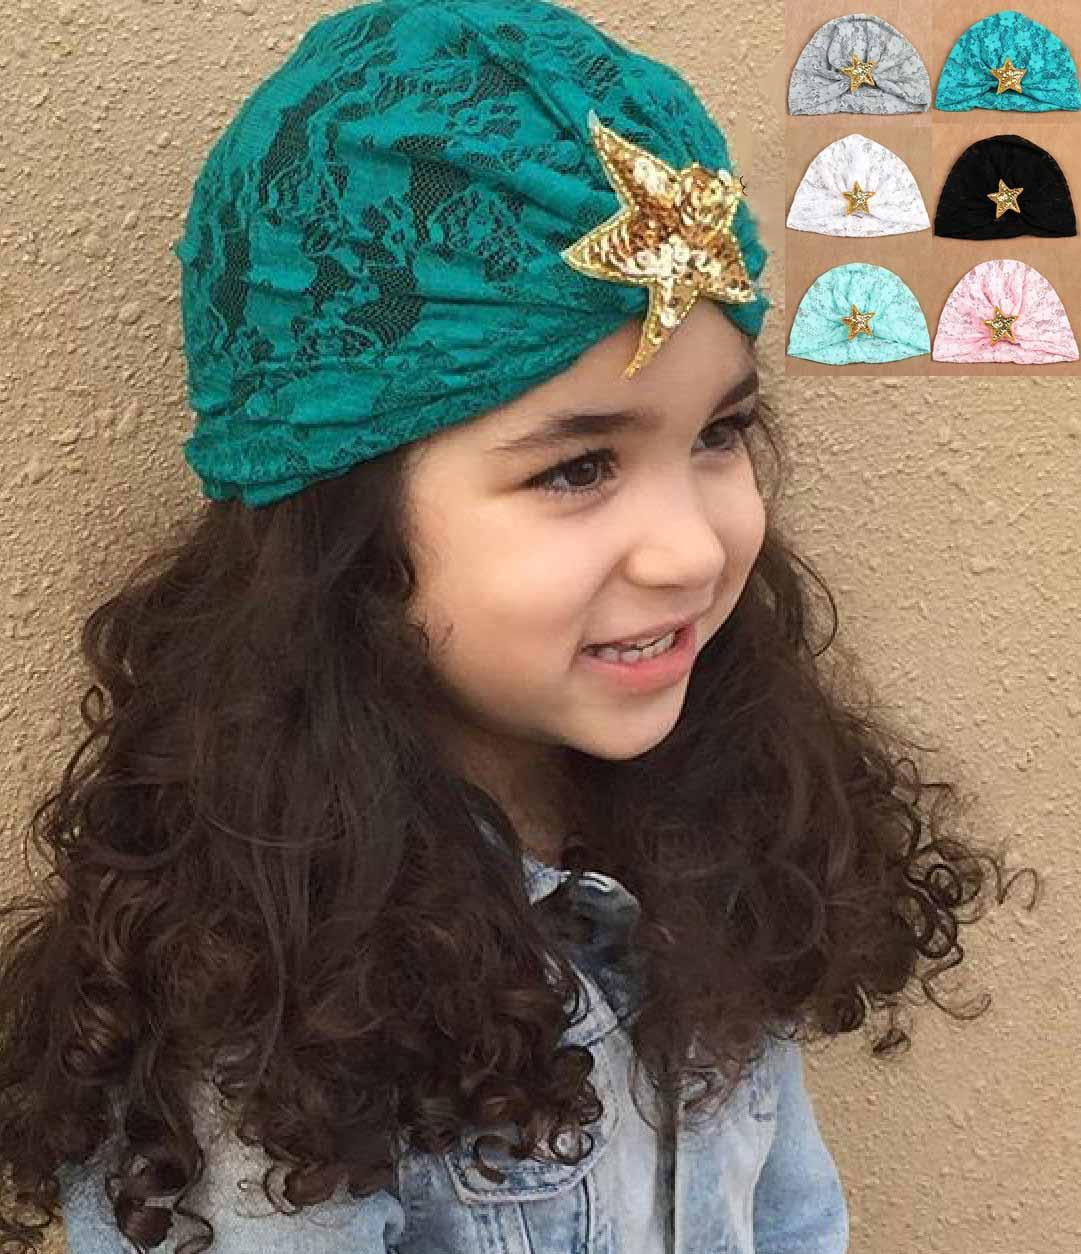 Baby Girl Bandanas Turban Head Wrap Girl Hat Indian Cap With Shinning Star  Many Styles Bow Hair Accessories Pearl Hair Accessories From Shunhuico ebc0422f4fb